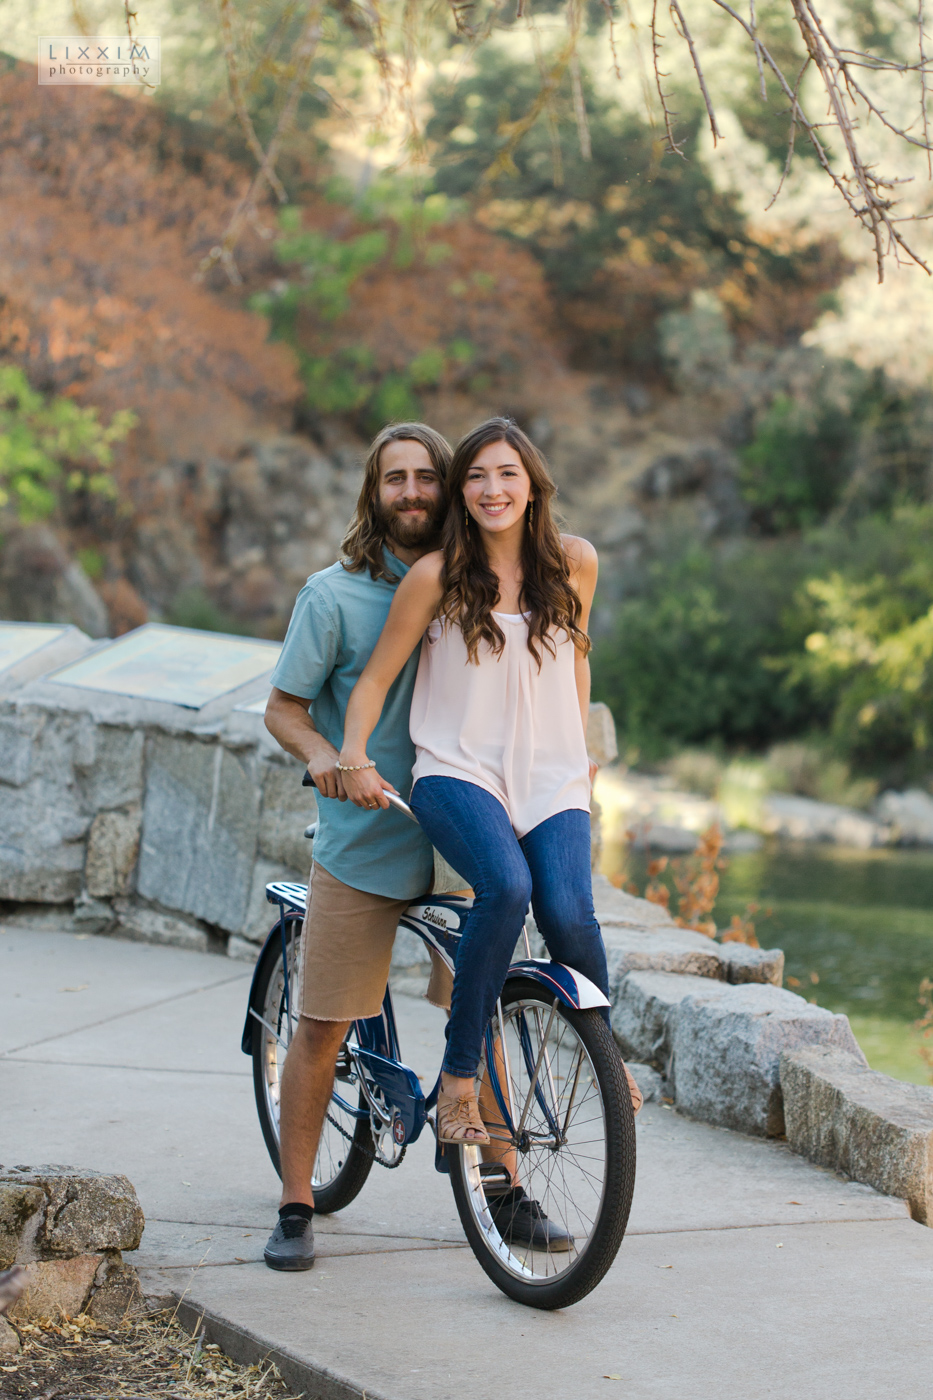 folsom-california-engagement-session-photography-7.jpg